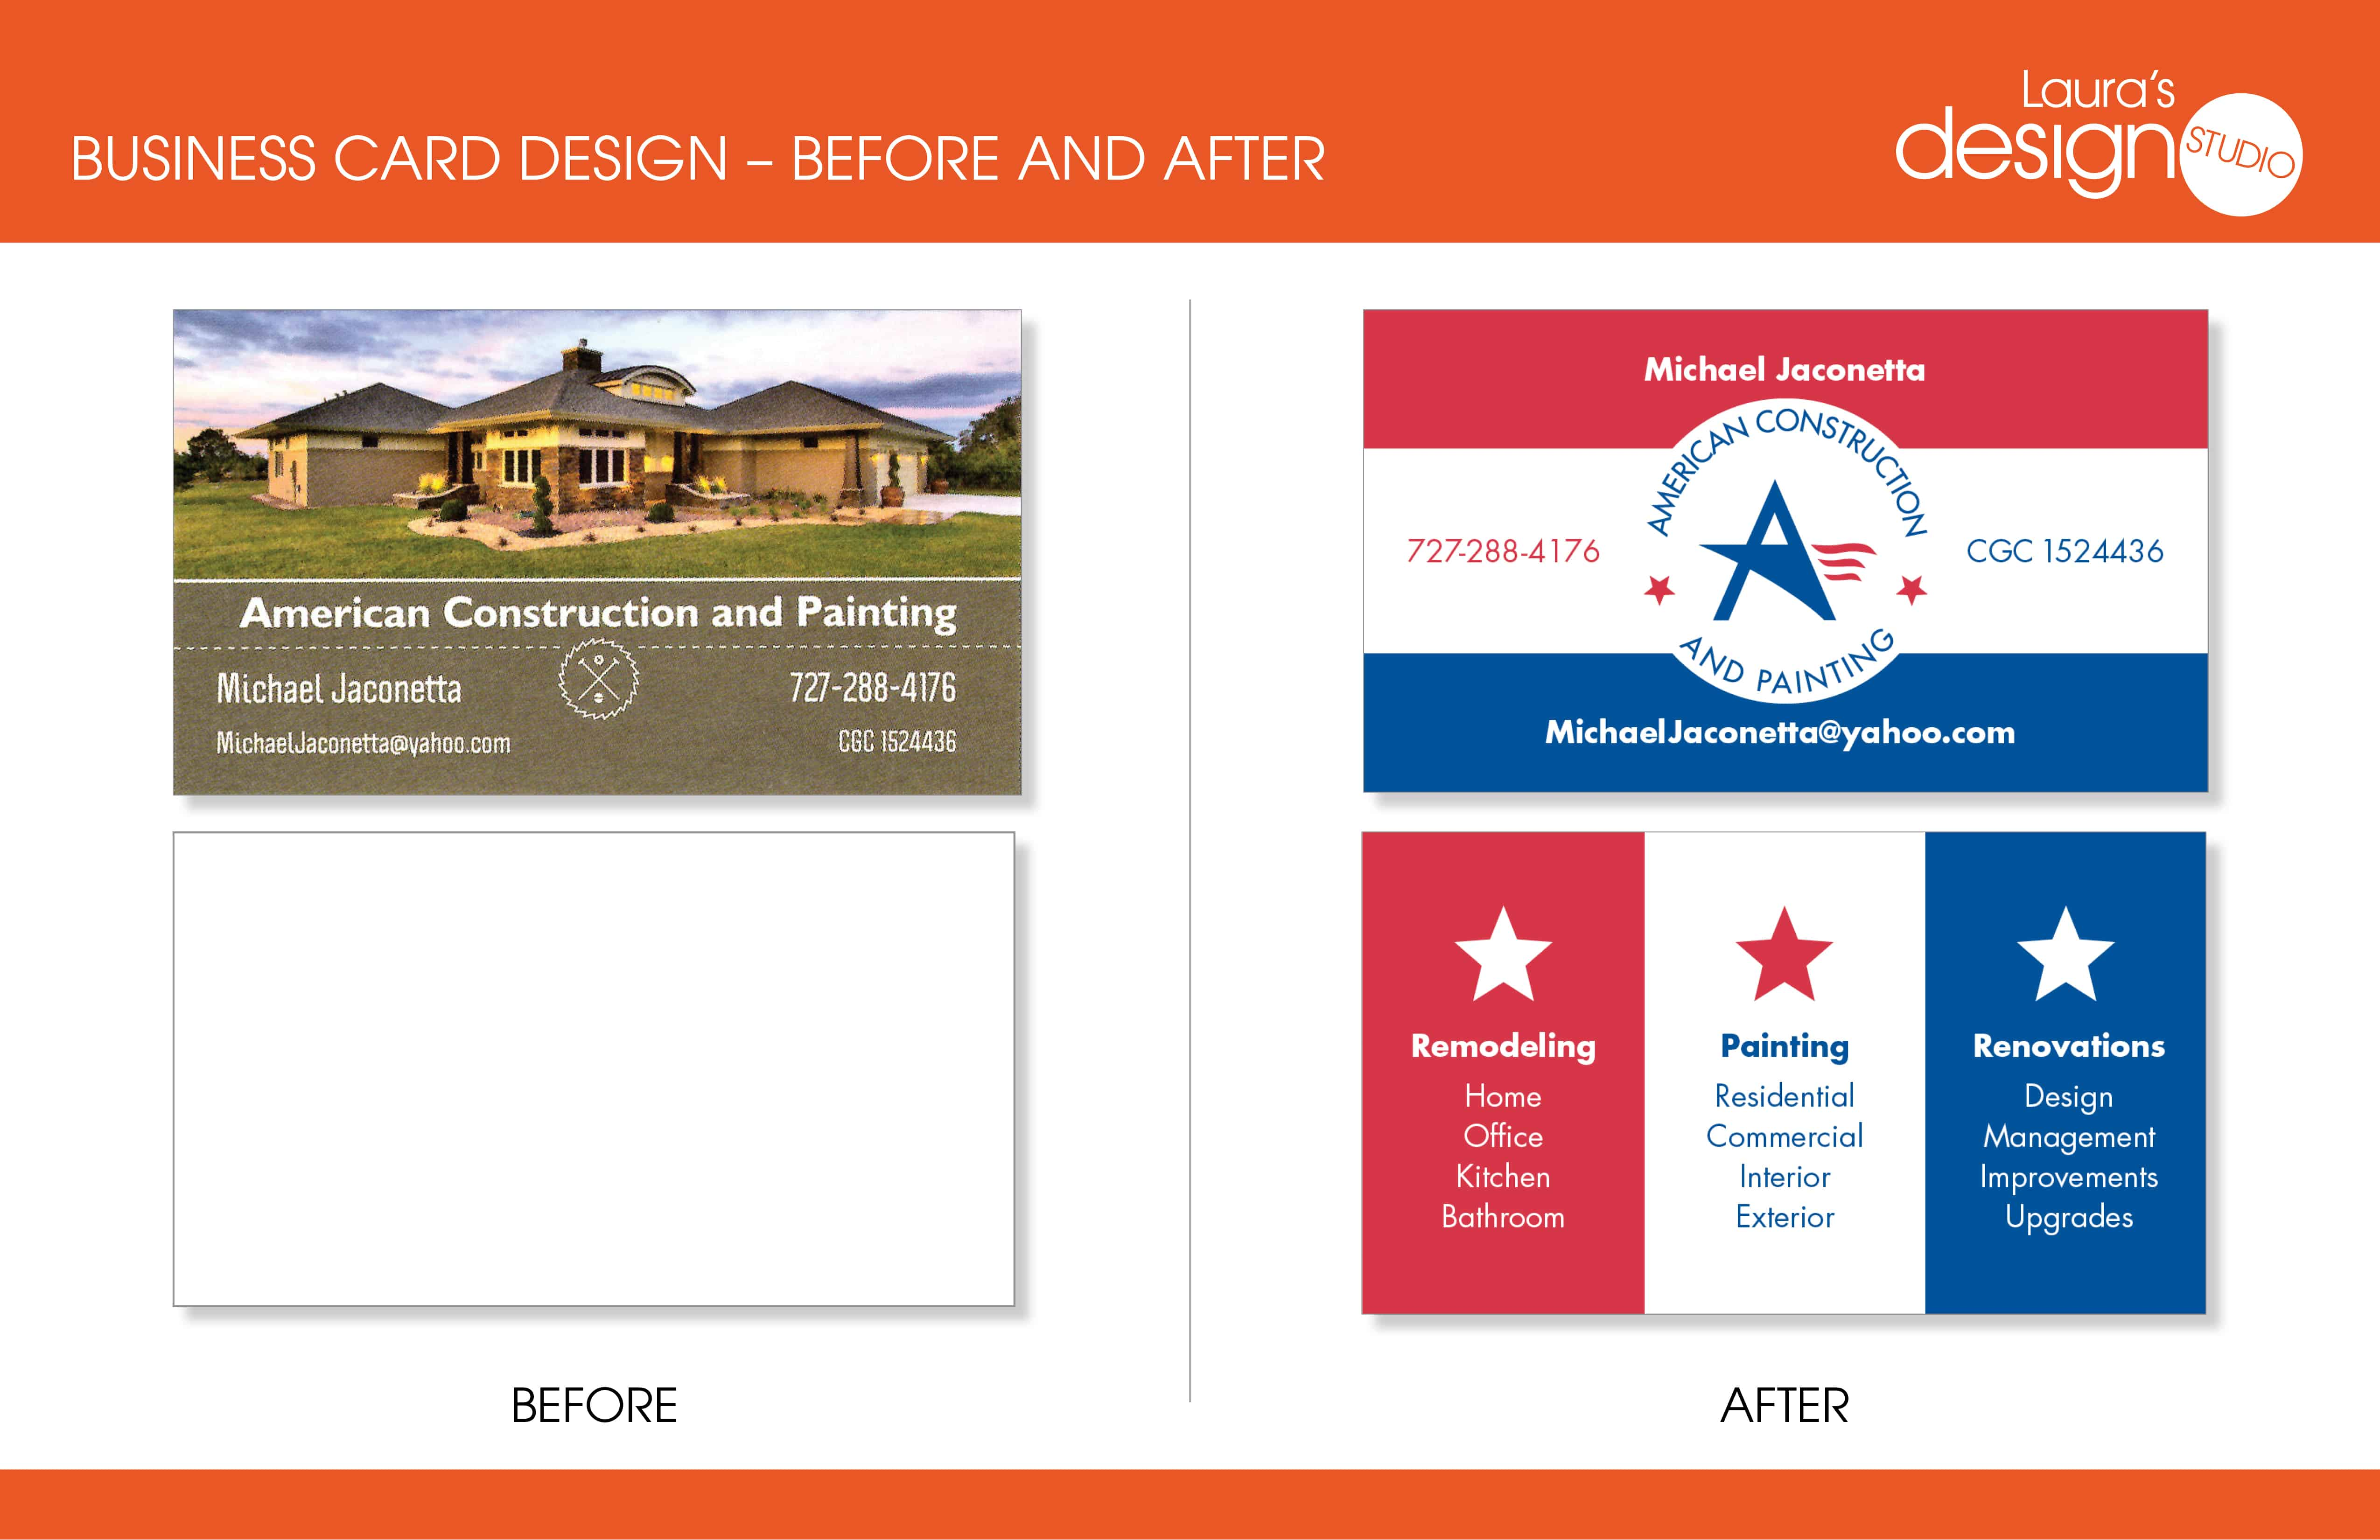 Before and After Logo and Business Card Design